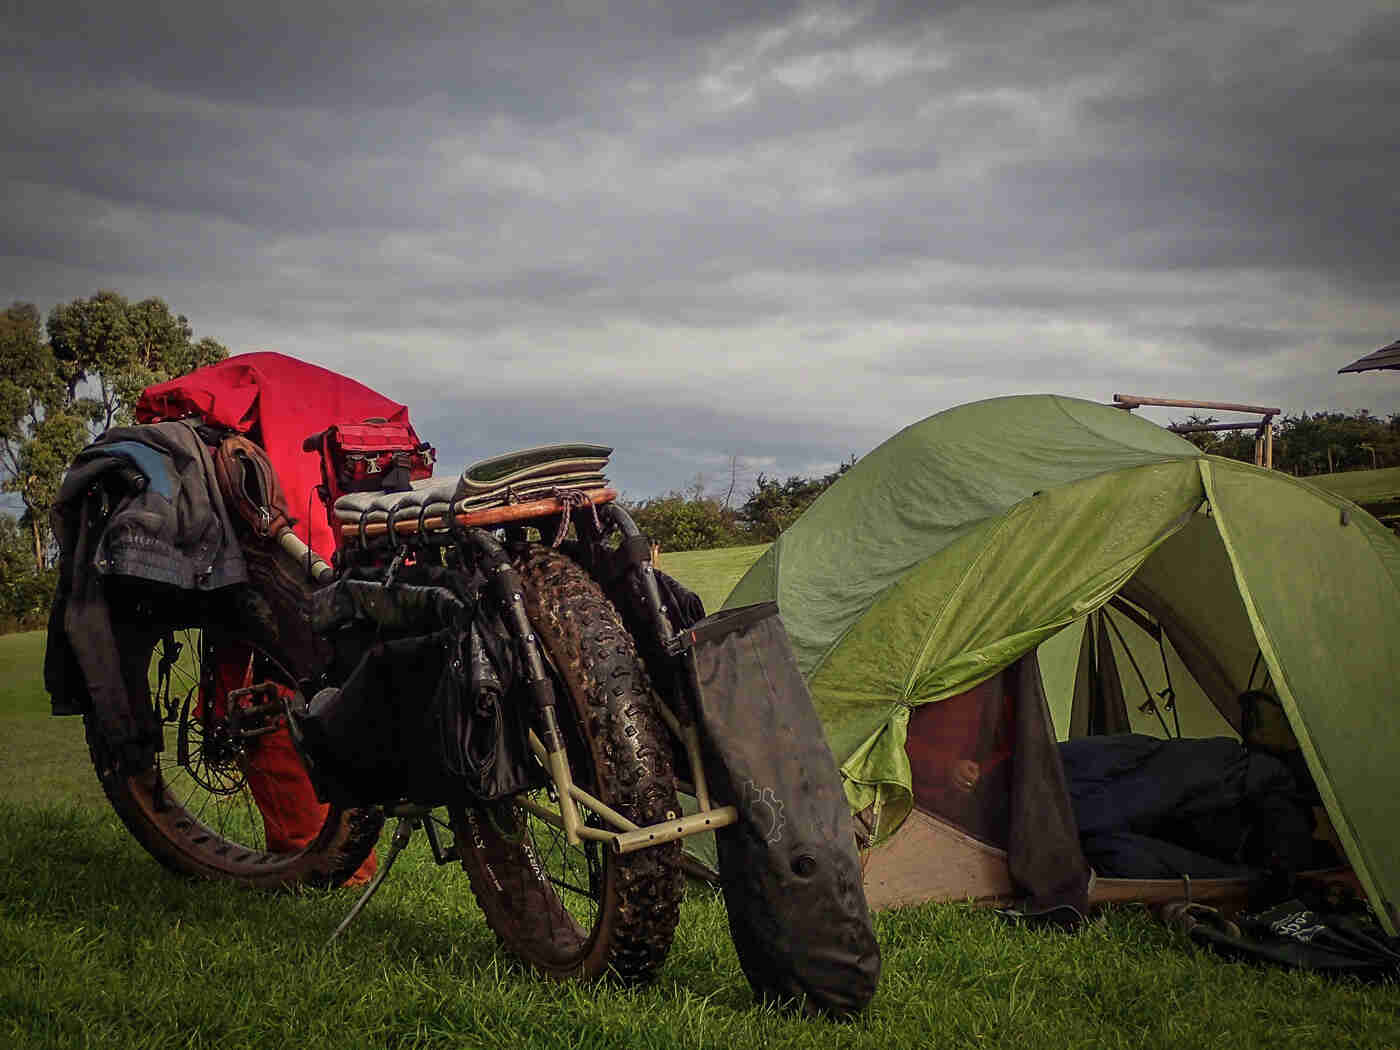 Rear view of a Surly Big Fat Dummy bike next to a green tent, in a grass field, with dark, gray clouds above